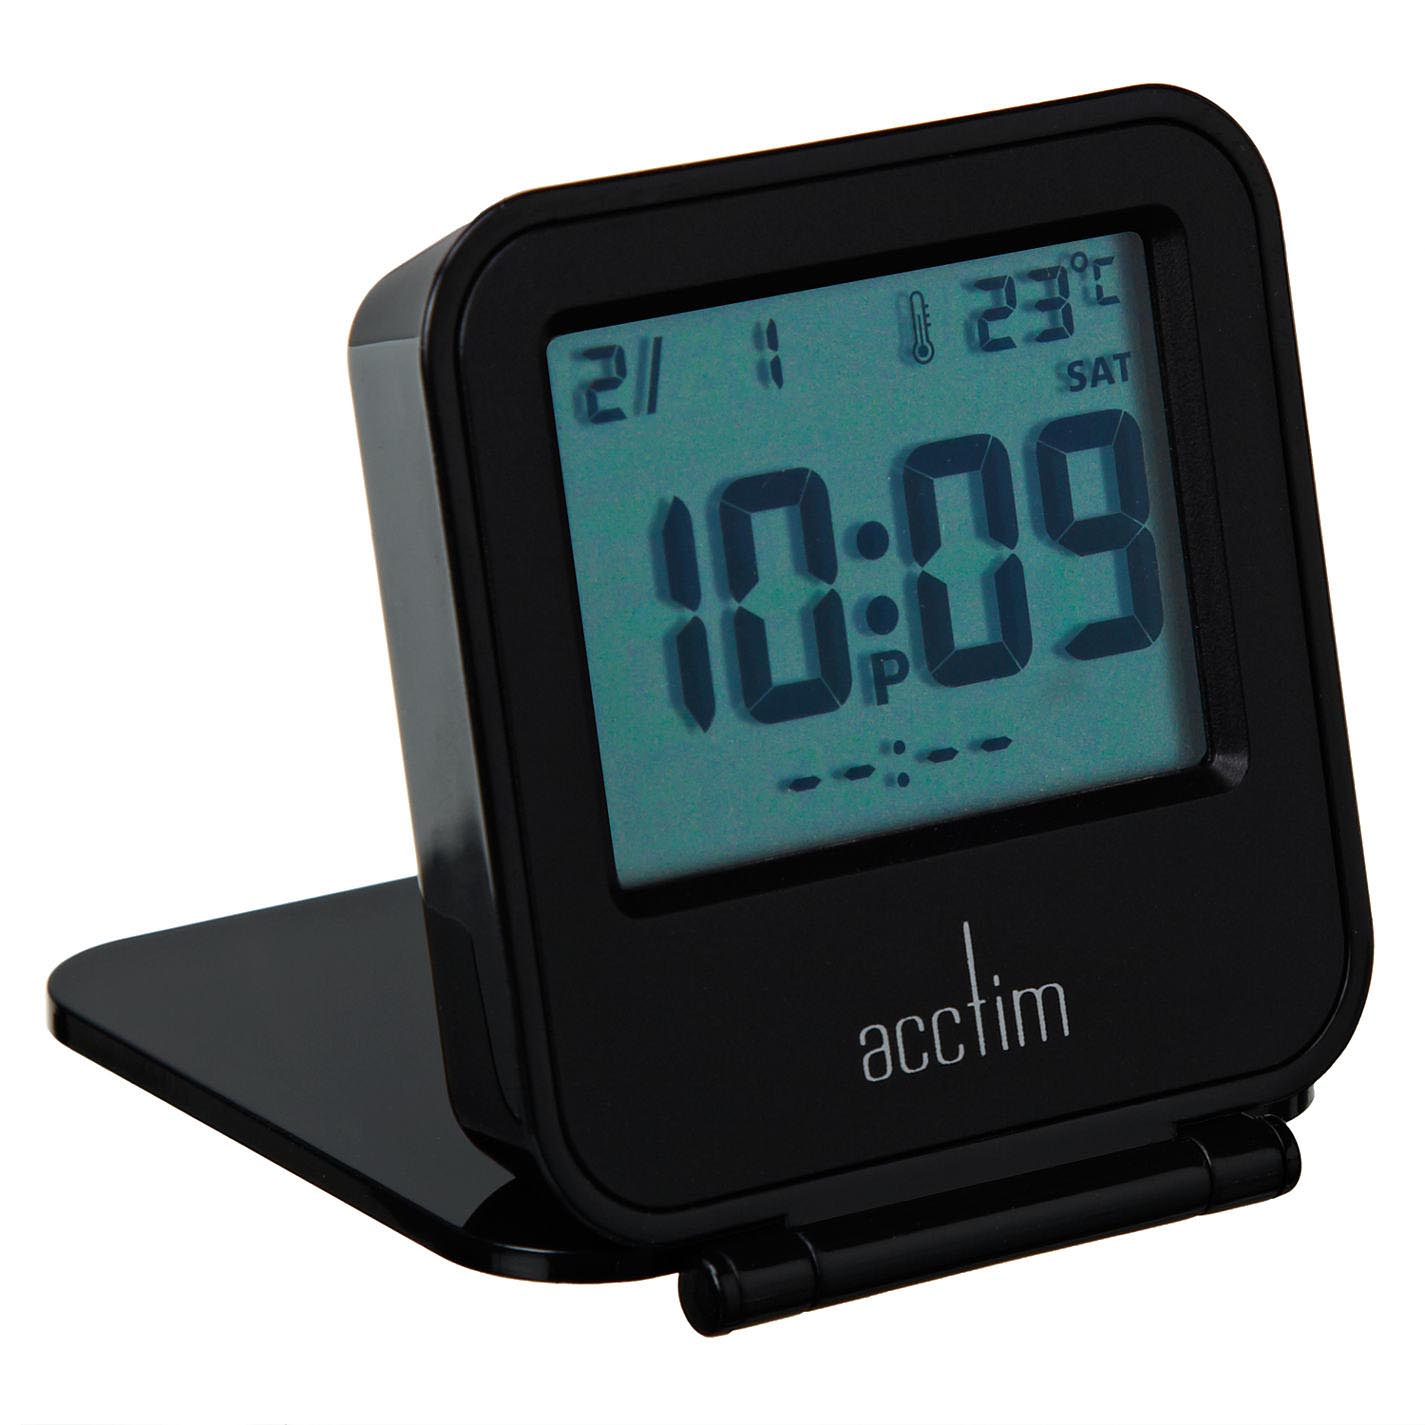 Digital Desk Clock Digital Desk Clocks Hostgarcia